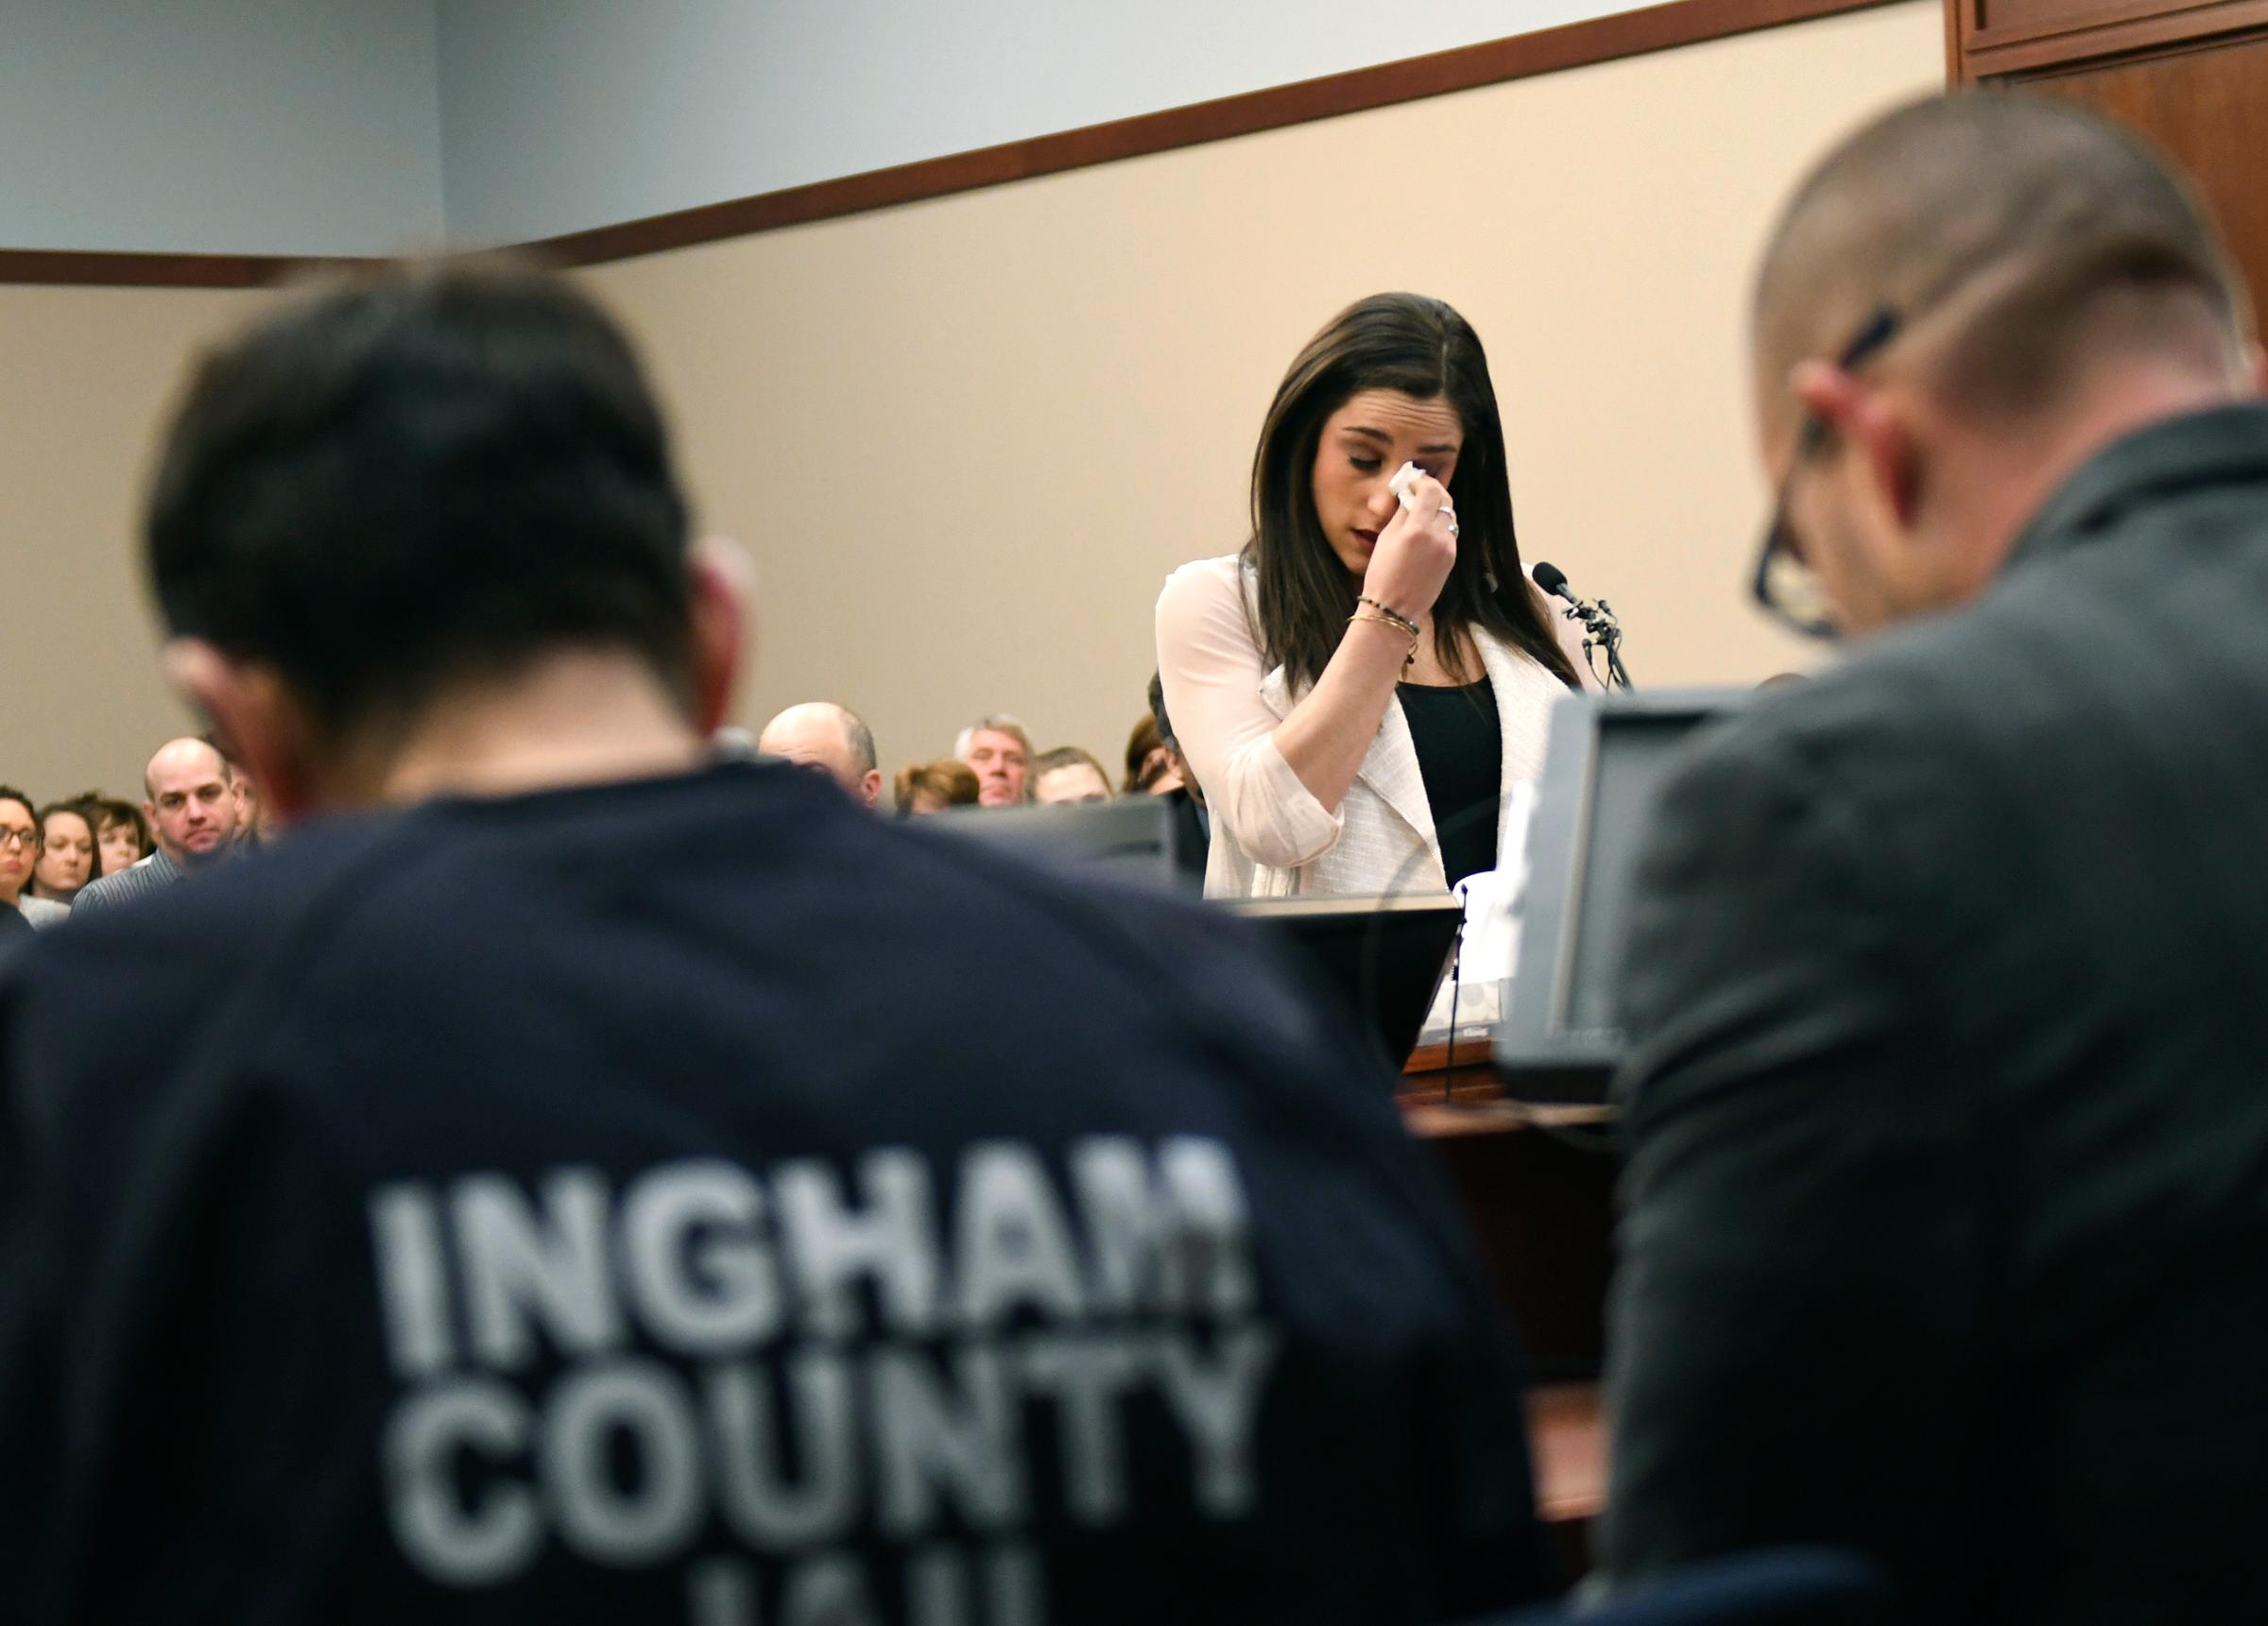 Jordyn Wieber gives her victim impact statement in Circuit Judge Rosemarie Aquilina's courtroom during the fourth day of sentencing for former sports doctor Larry Nassar, who pled guilty to multiple counts of sexual assault, Friday, Jan. 19, 2018, in Lansing, Mich. (Matthew Dae Smith /Lansing State Journal via AP)